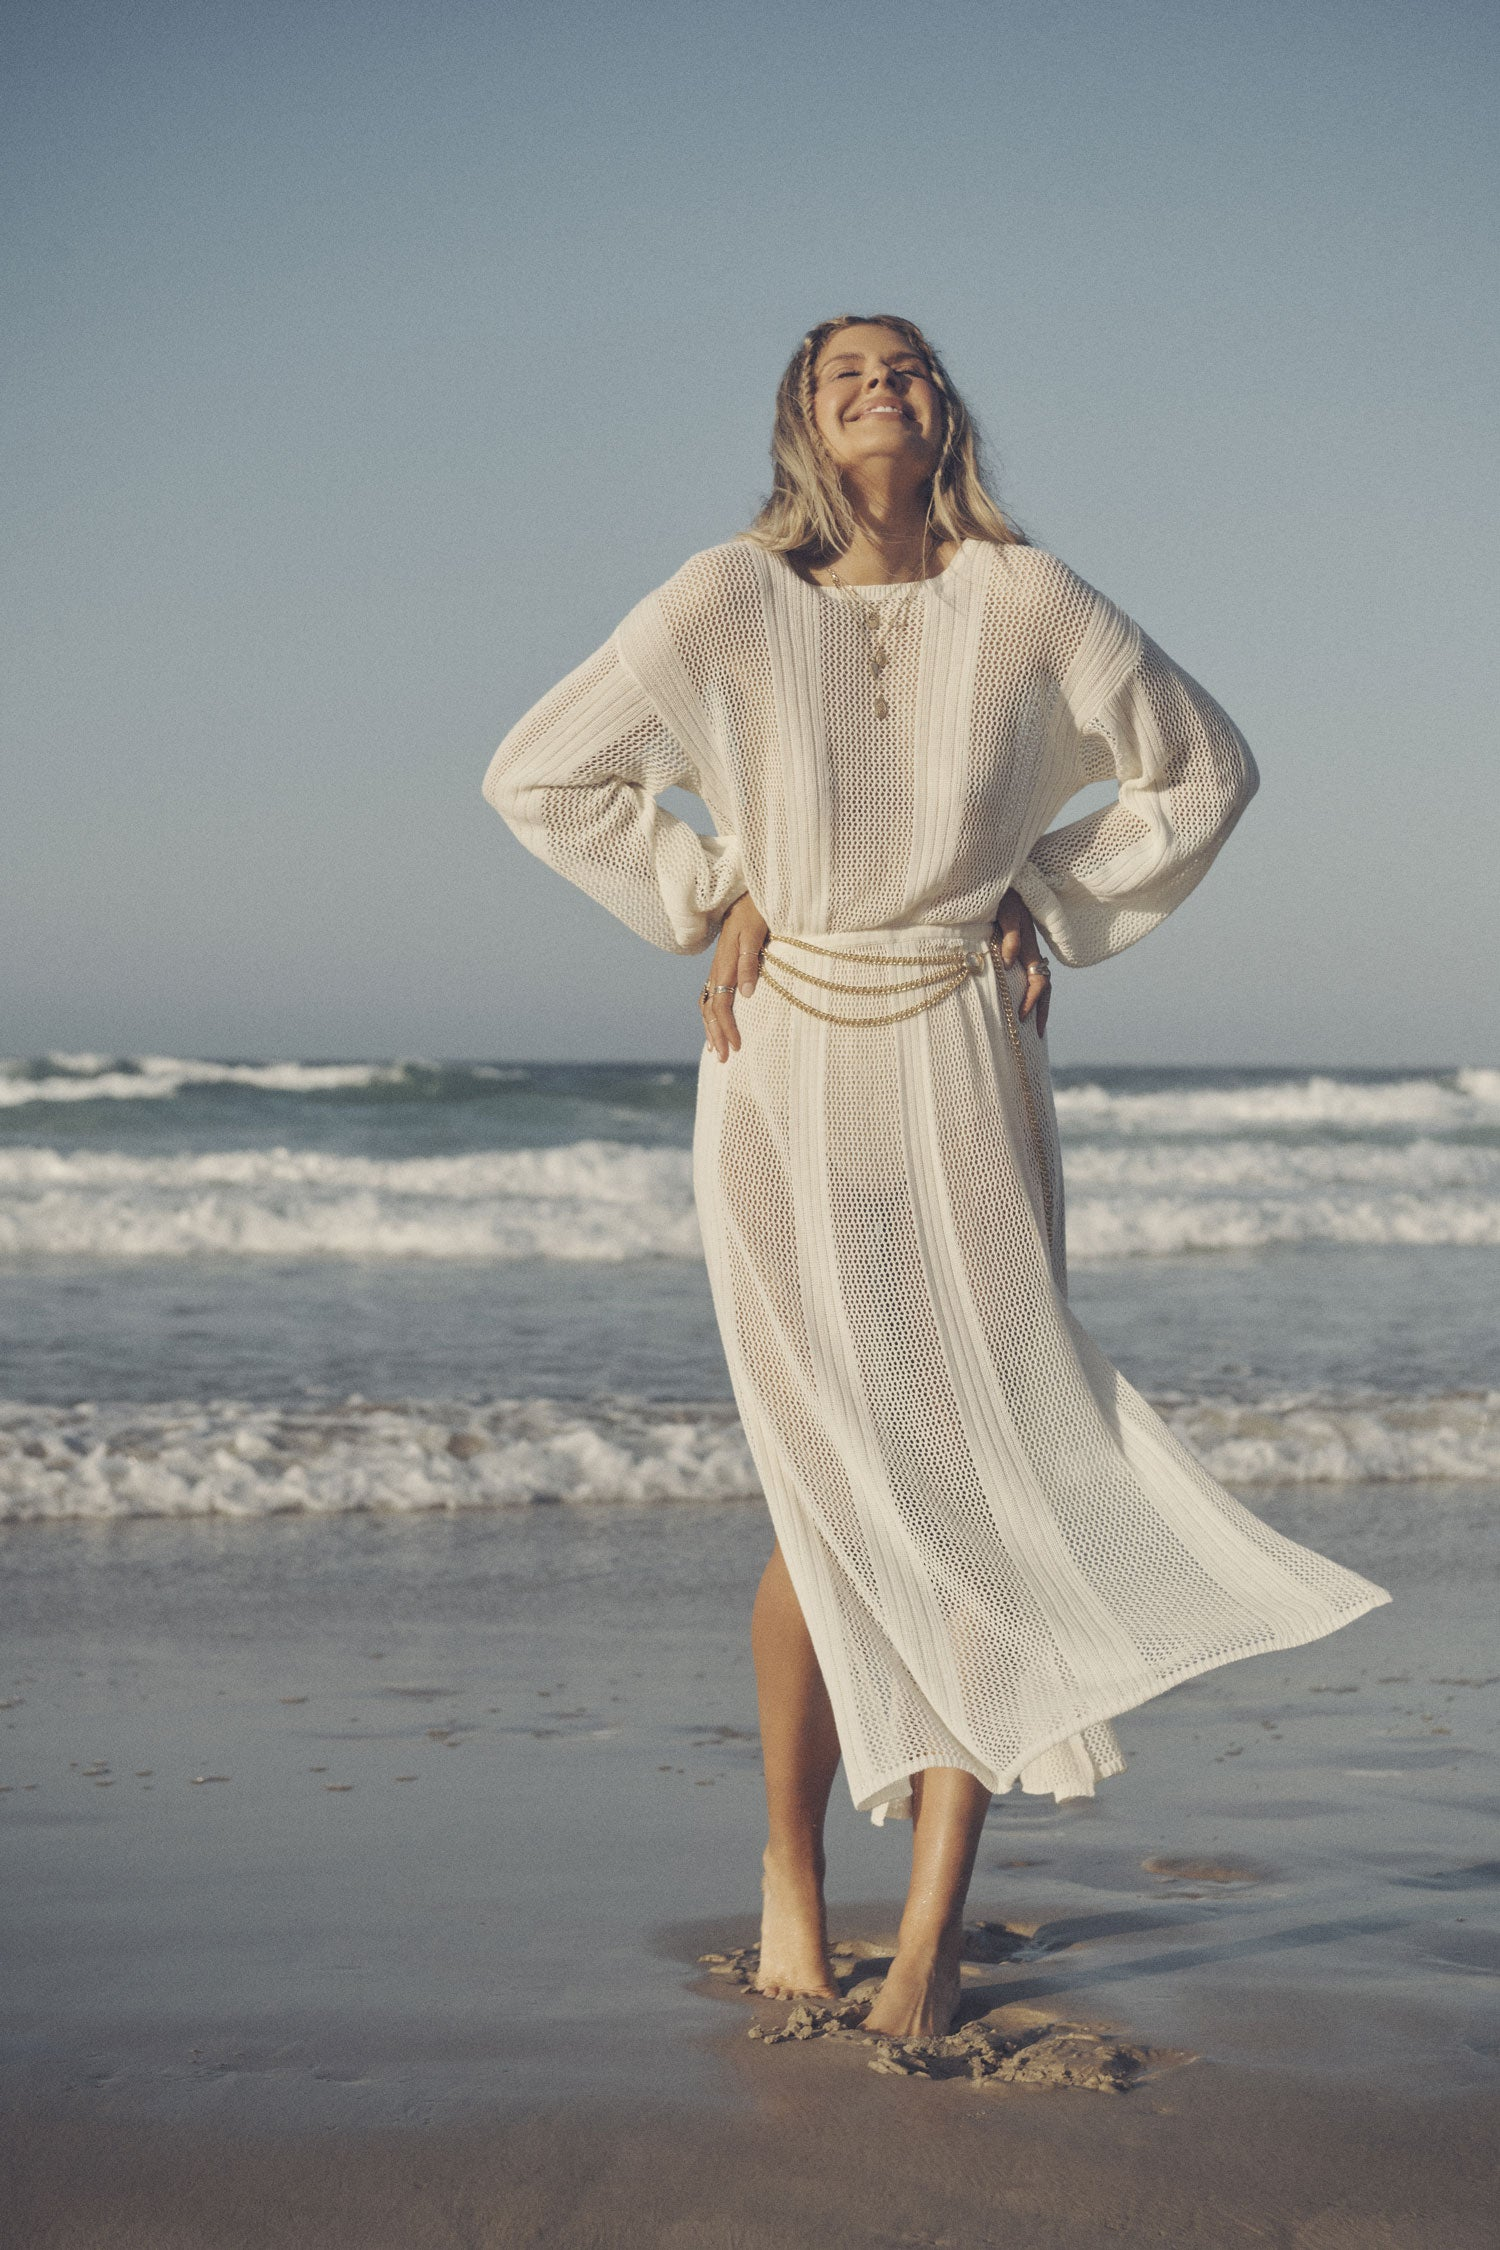 Influencer and model, Elle Ferguson, posing on a beach while wearing gold jewellery, the Spell Belladonna Chain Belt and the cream Rush Knit Midi Dress, featuring side splits and an elasticated waistline.